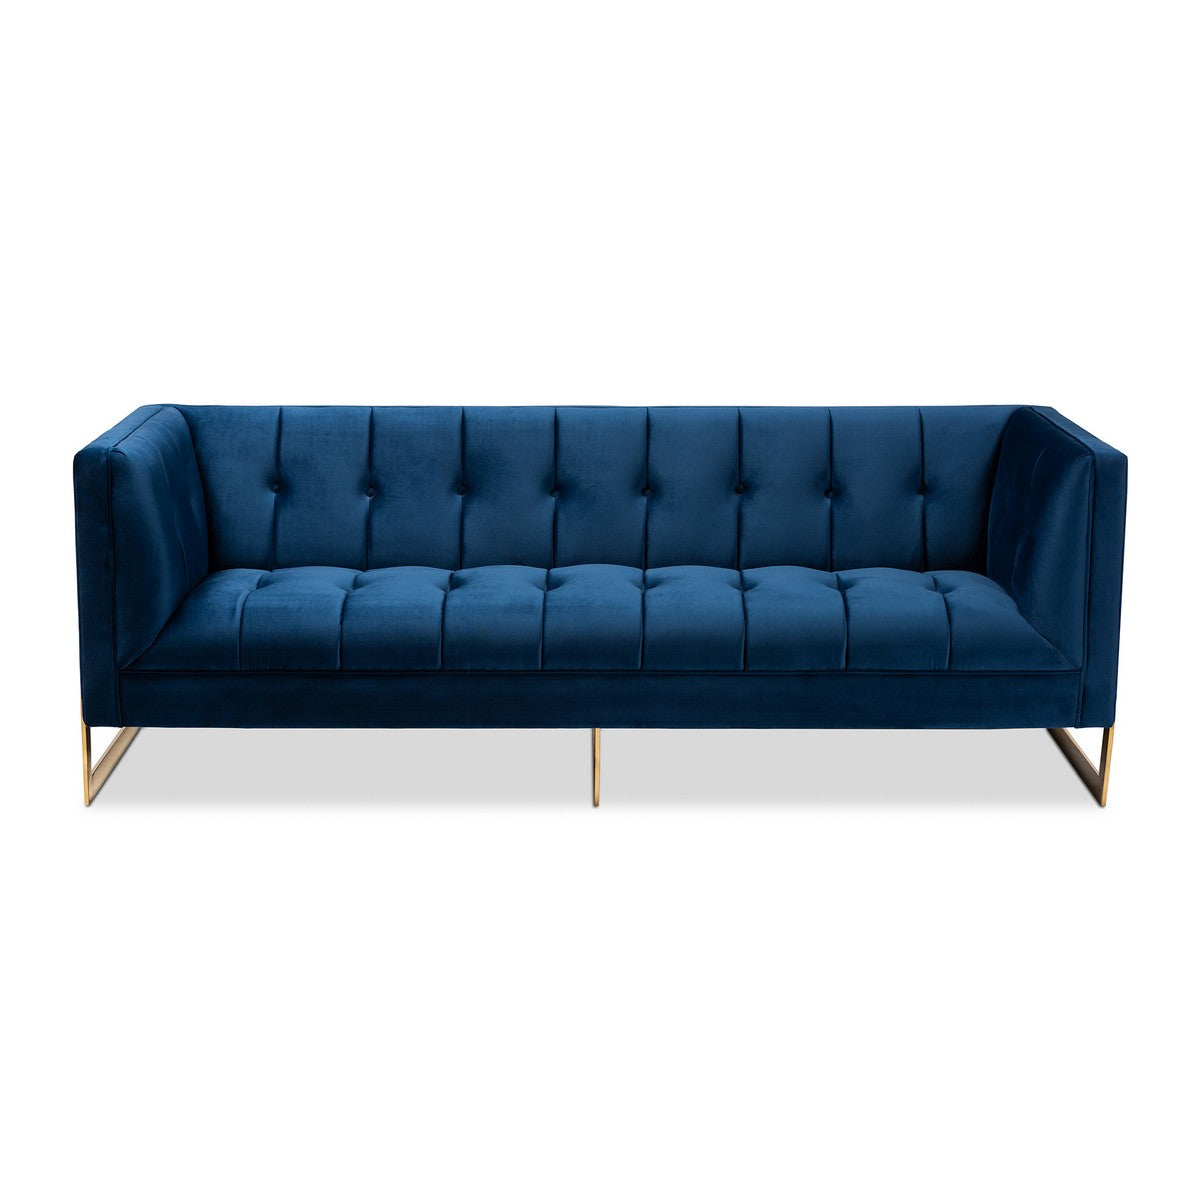 Baxton Studio Ambra Glam and Luxe Royal Blue Velvet Fabric Upholstered and Button Tufted Gold Sofa with Gold-Tone Frame Baxton Studio-sofas-Minimal And Modern - 1